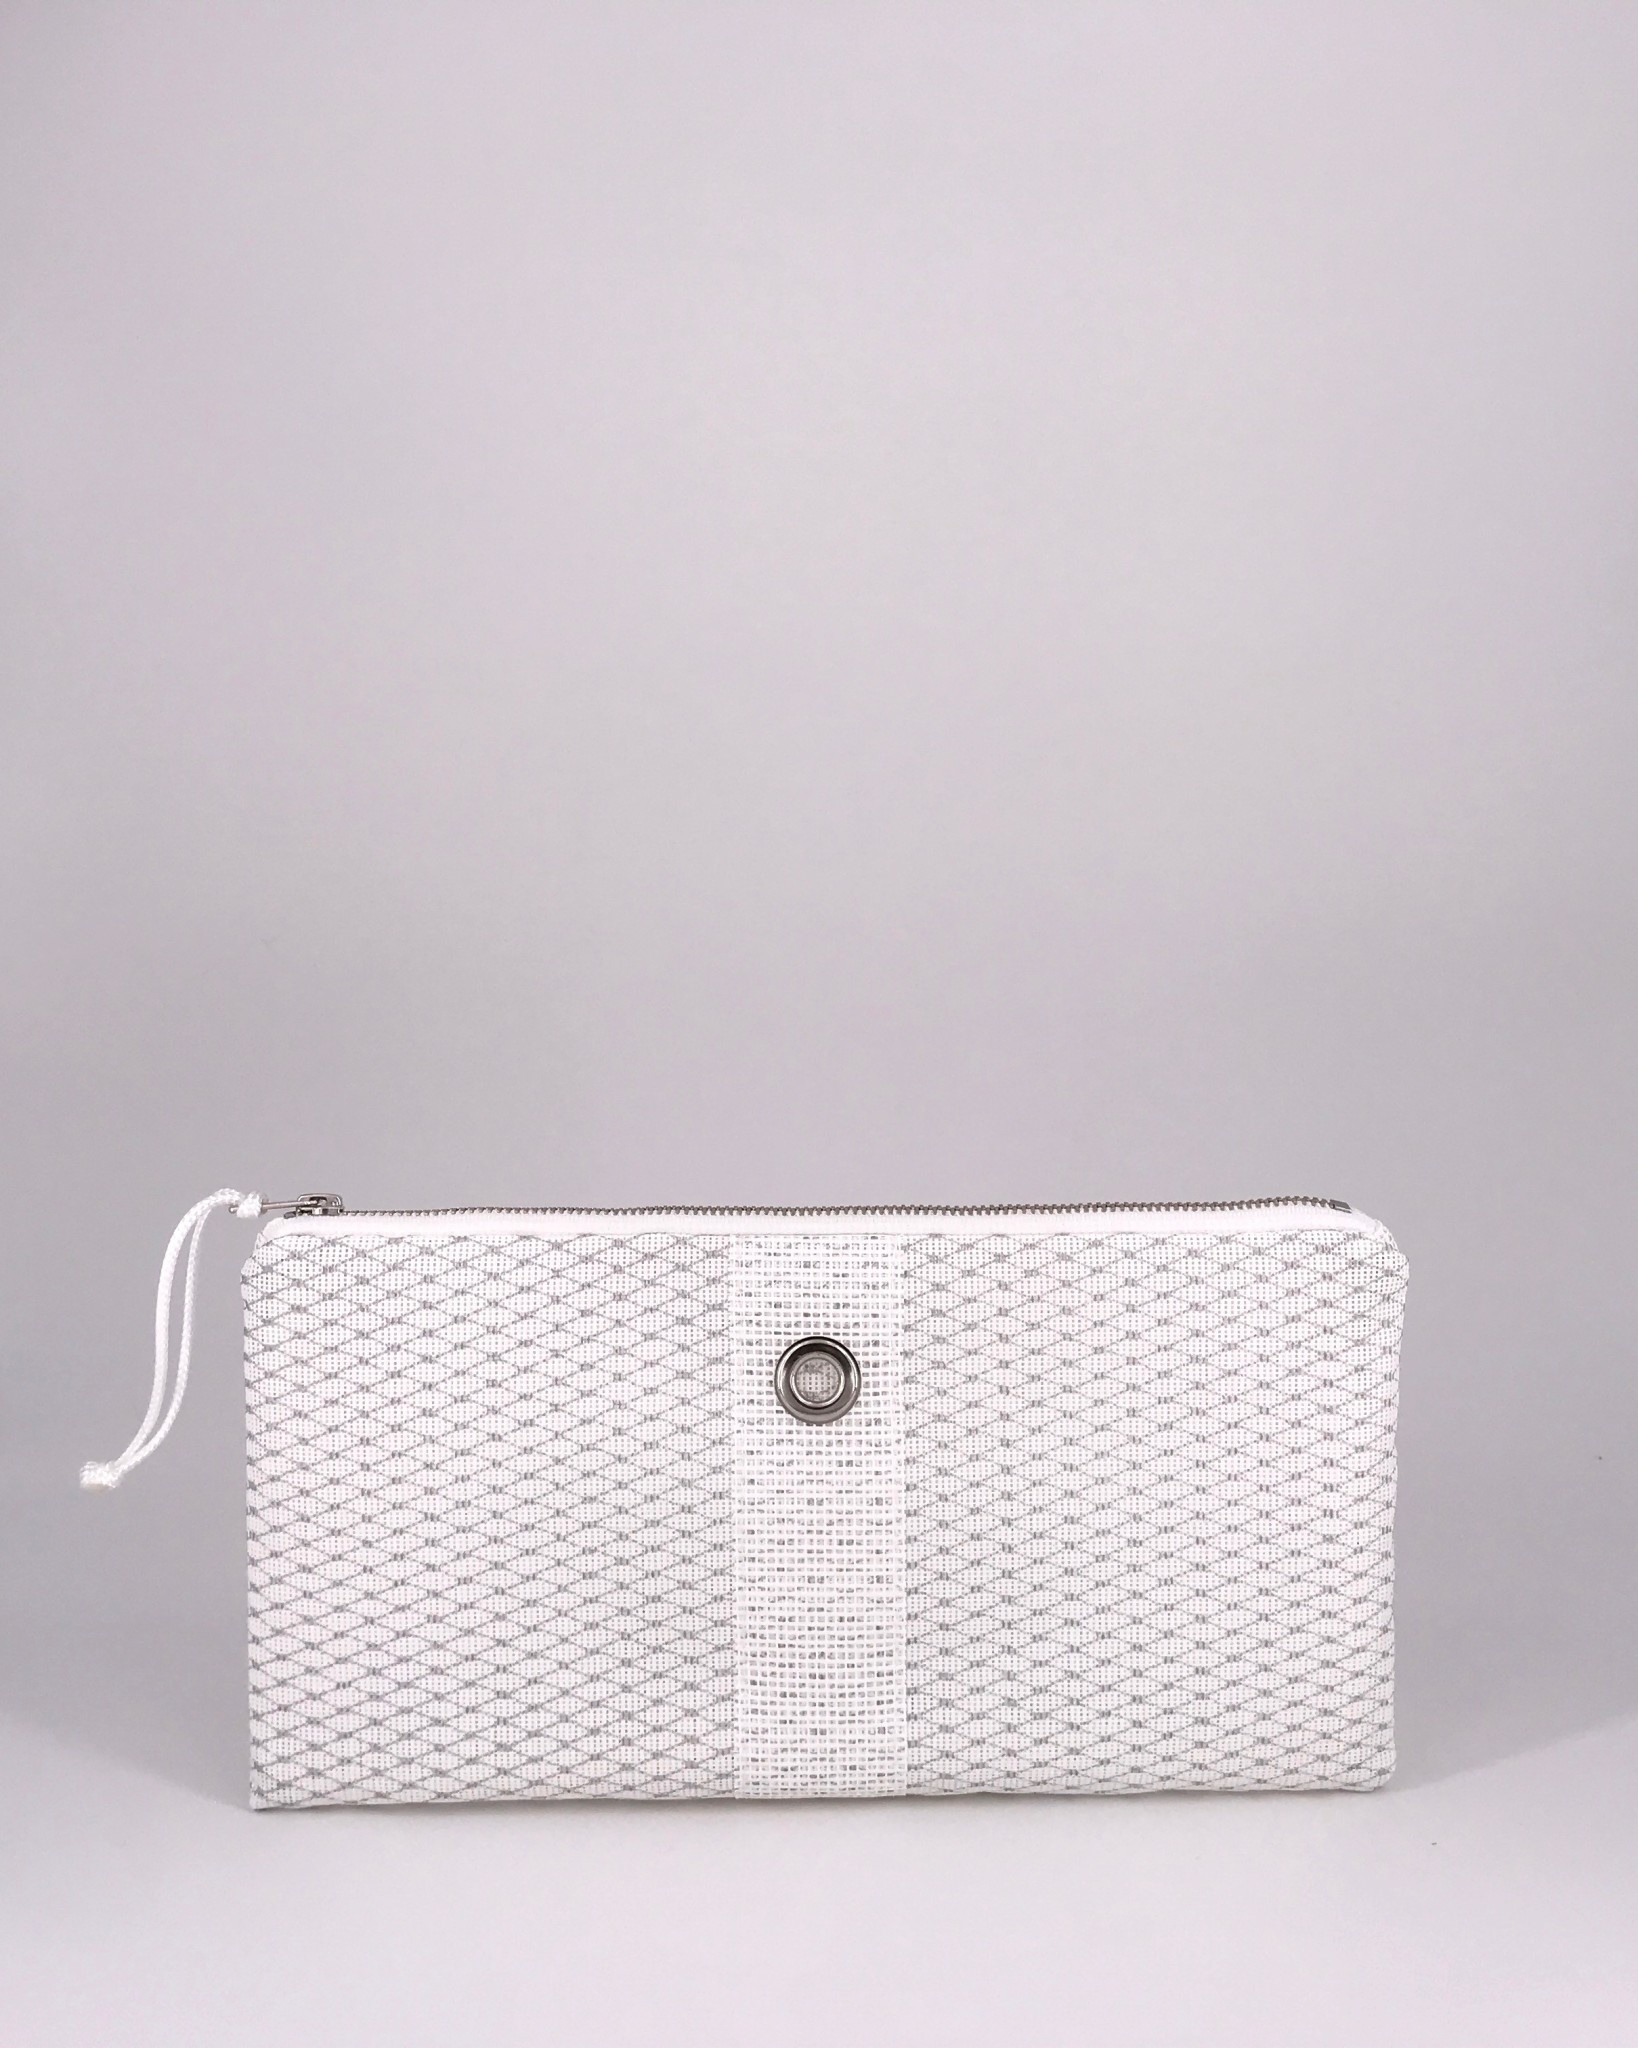 Alaina Marie ® Mini Silver Metallic on White & White Clutch